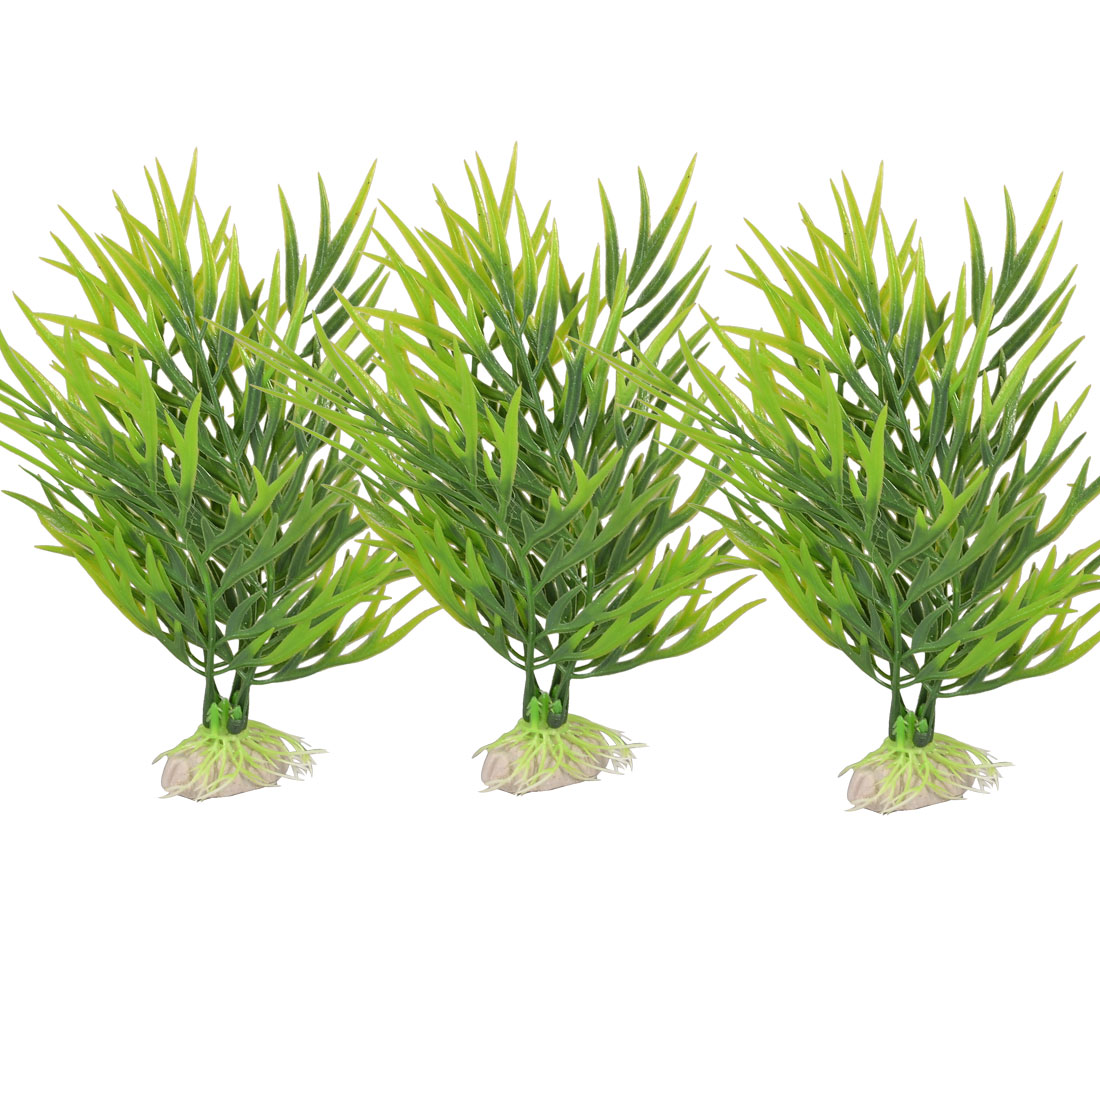 "6.7"" Height Green Narrow Leaves Fish Tank Artificial Grass Decor 3 Pcs"